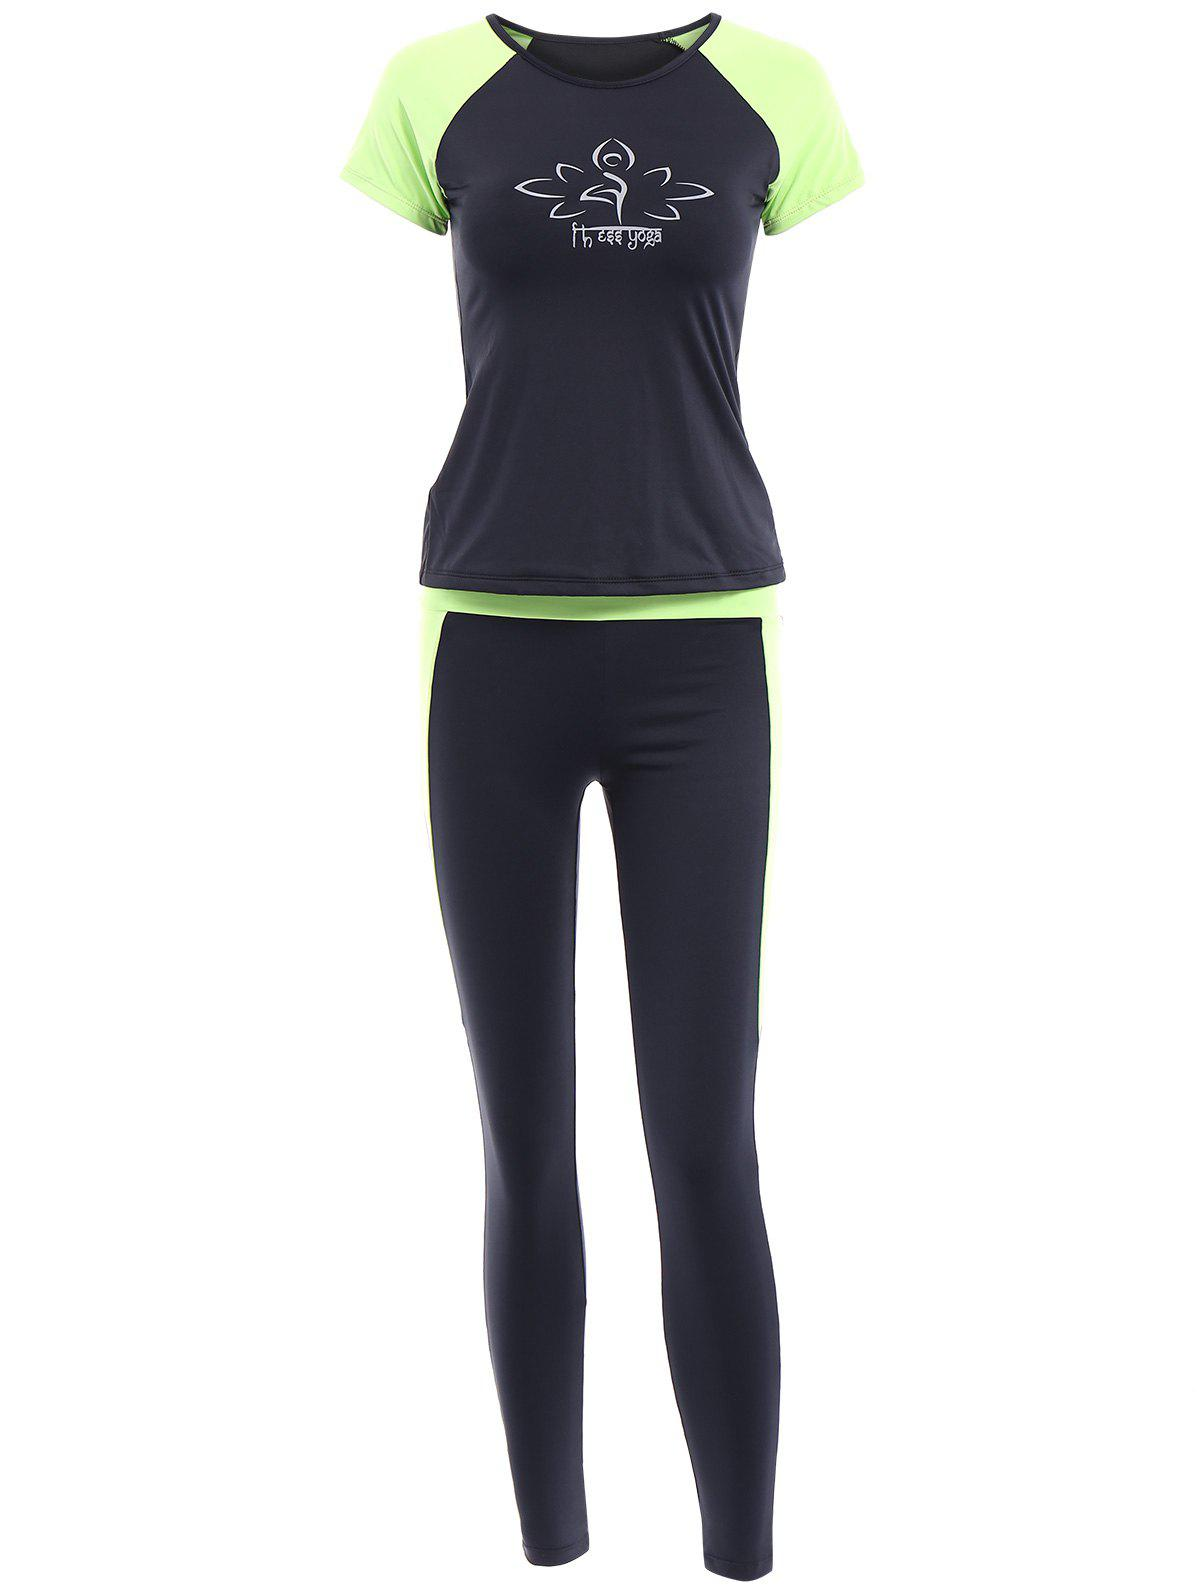 Sports Round Collar Short Sleeves Bodycon Printed Women's Activewear Suit